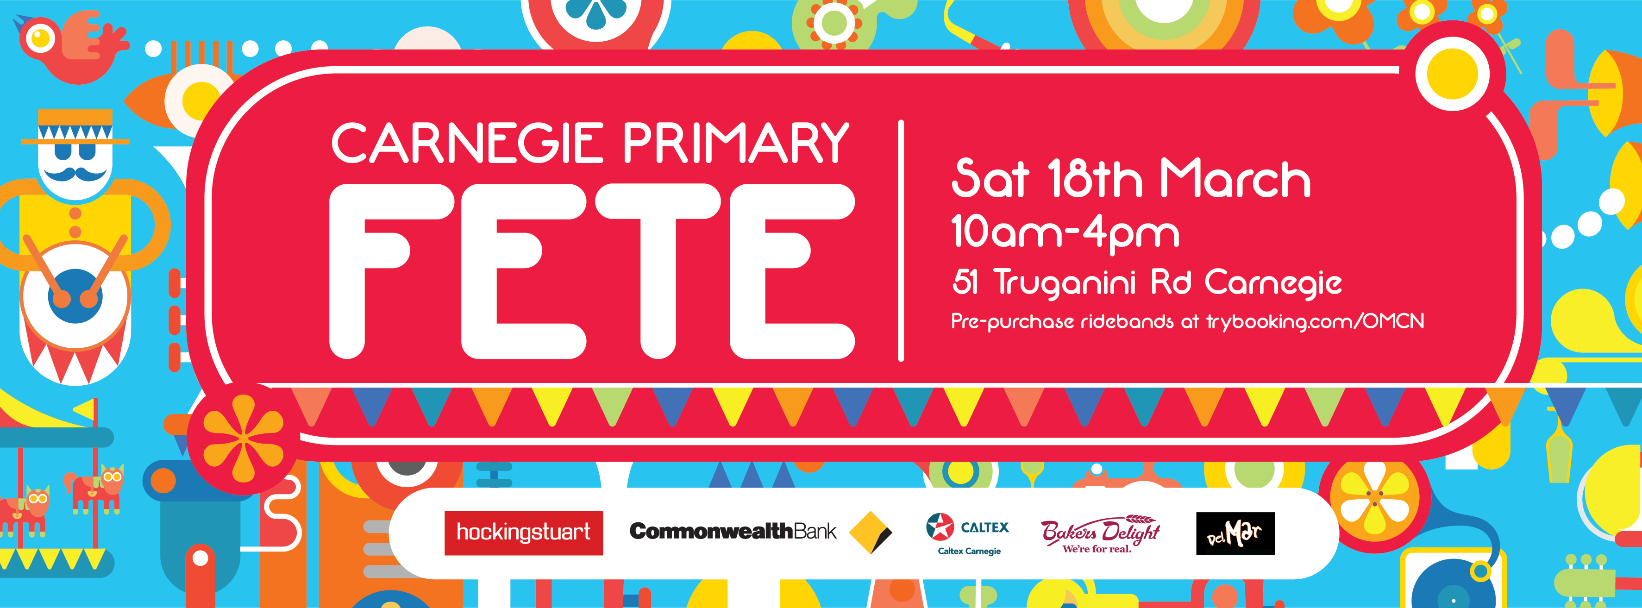 Come along to whatu0027s sure to be the best Primary School Fete in Melbourne! - School Fete PNG